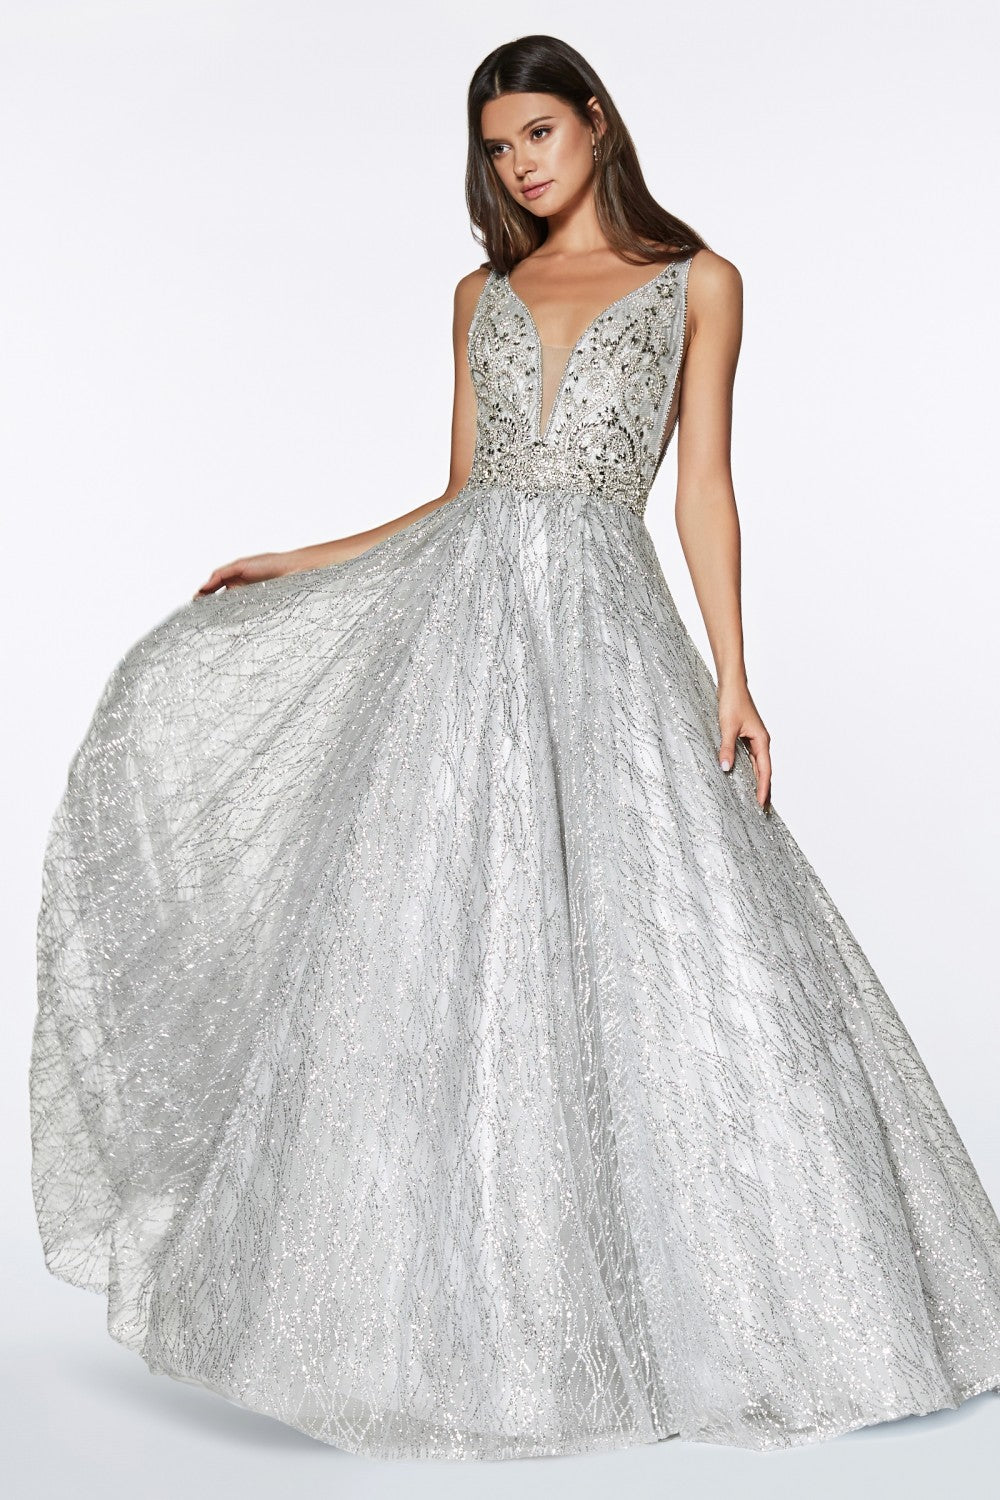 Glitter Ball Gown With Beaded Bodice And Illusion Sides